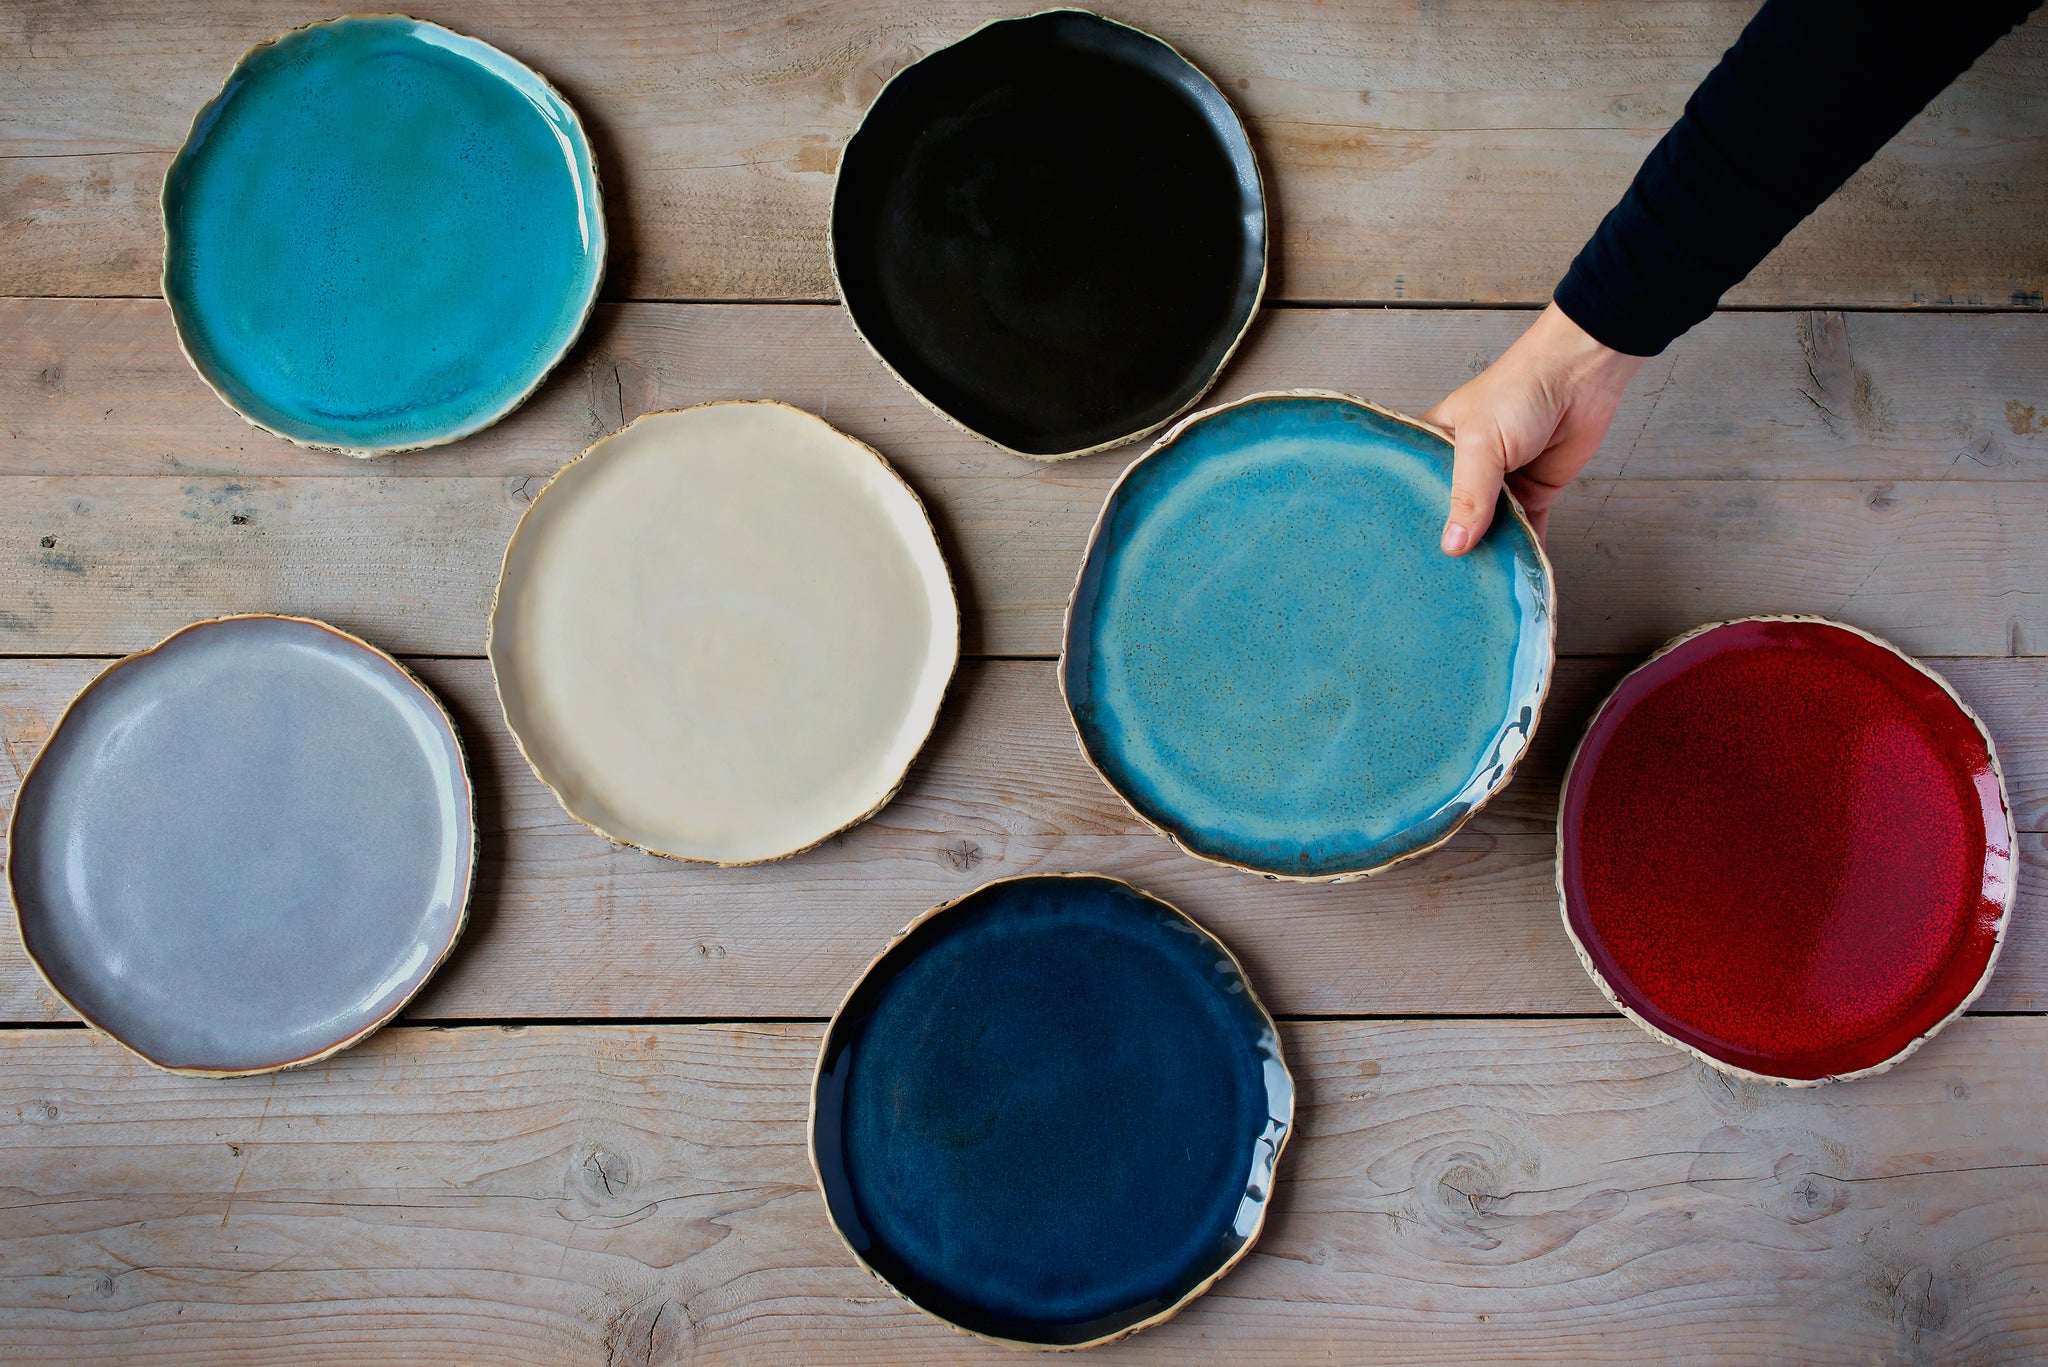 Handmade Ceramic Plates Pottery Plates For Your Table Kari Ceramics